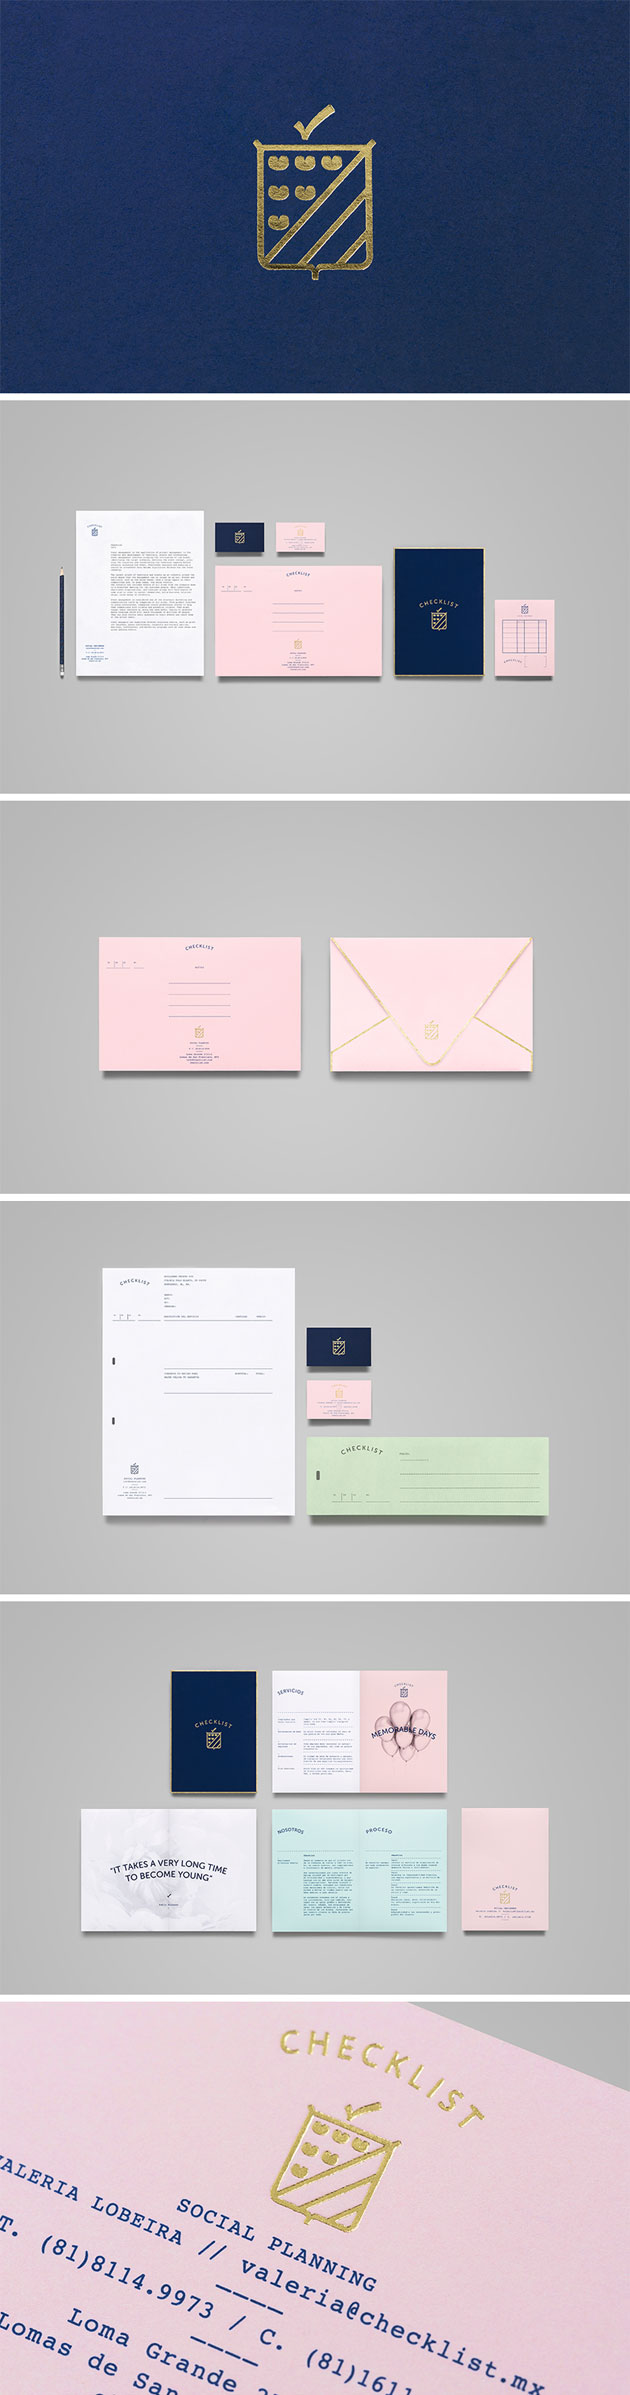 Checklist Corporate branding by Anagrama